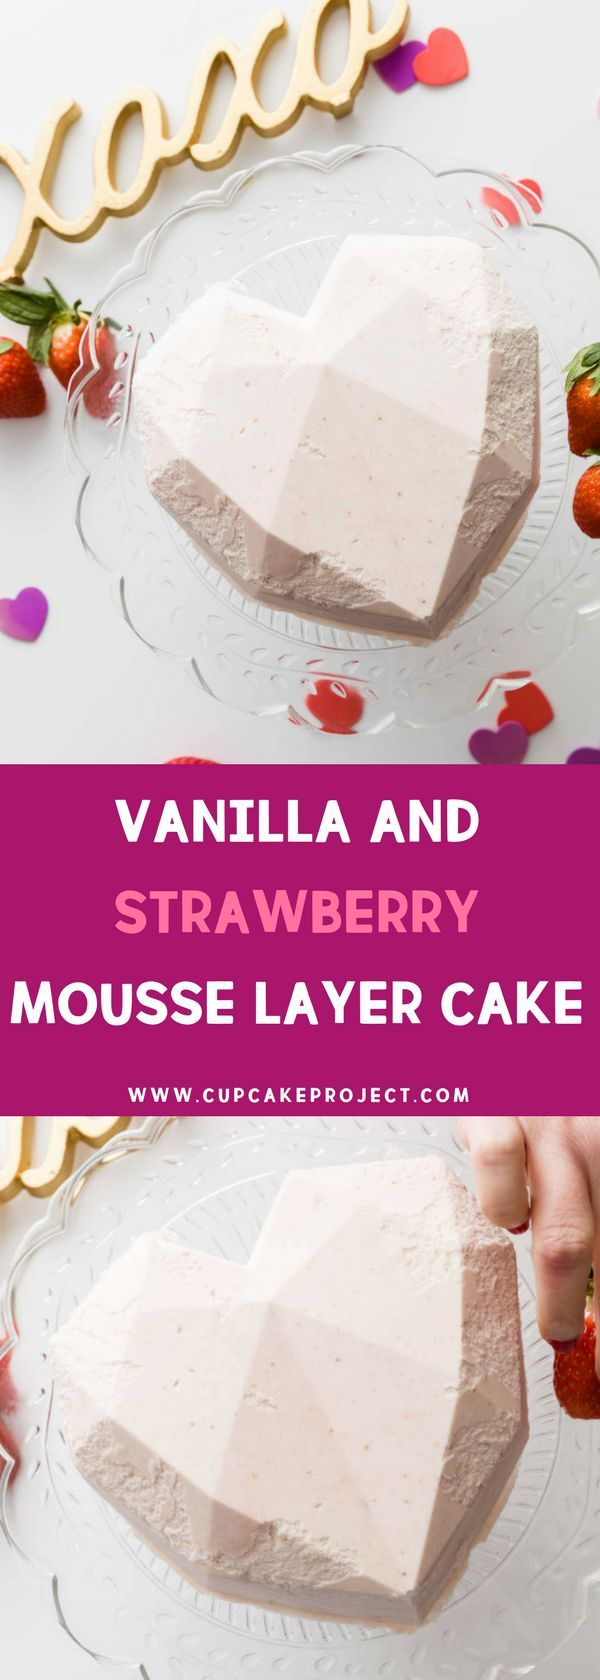 Vanilla and Strawberry Mousse Layer Cake - Sweet and delicious cake recipe perfect to make this Valentine's! The fresh strawberry smell was intoxicating, and the taste was heavenly. For more simple baking desserts recipes and homemade sweet treats, check us out at #cupcakeproject. #desserts #yummydesserts #recipeoftheday #sweettooth